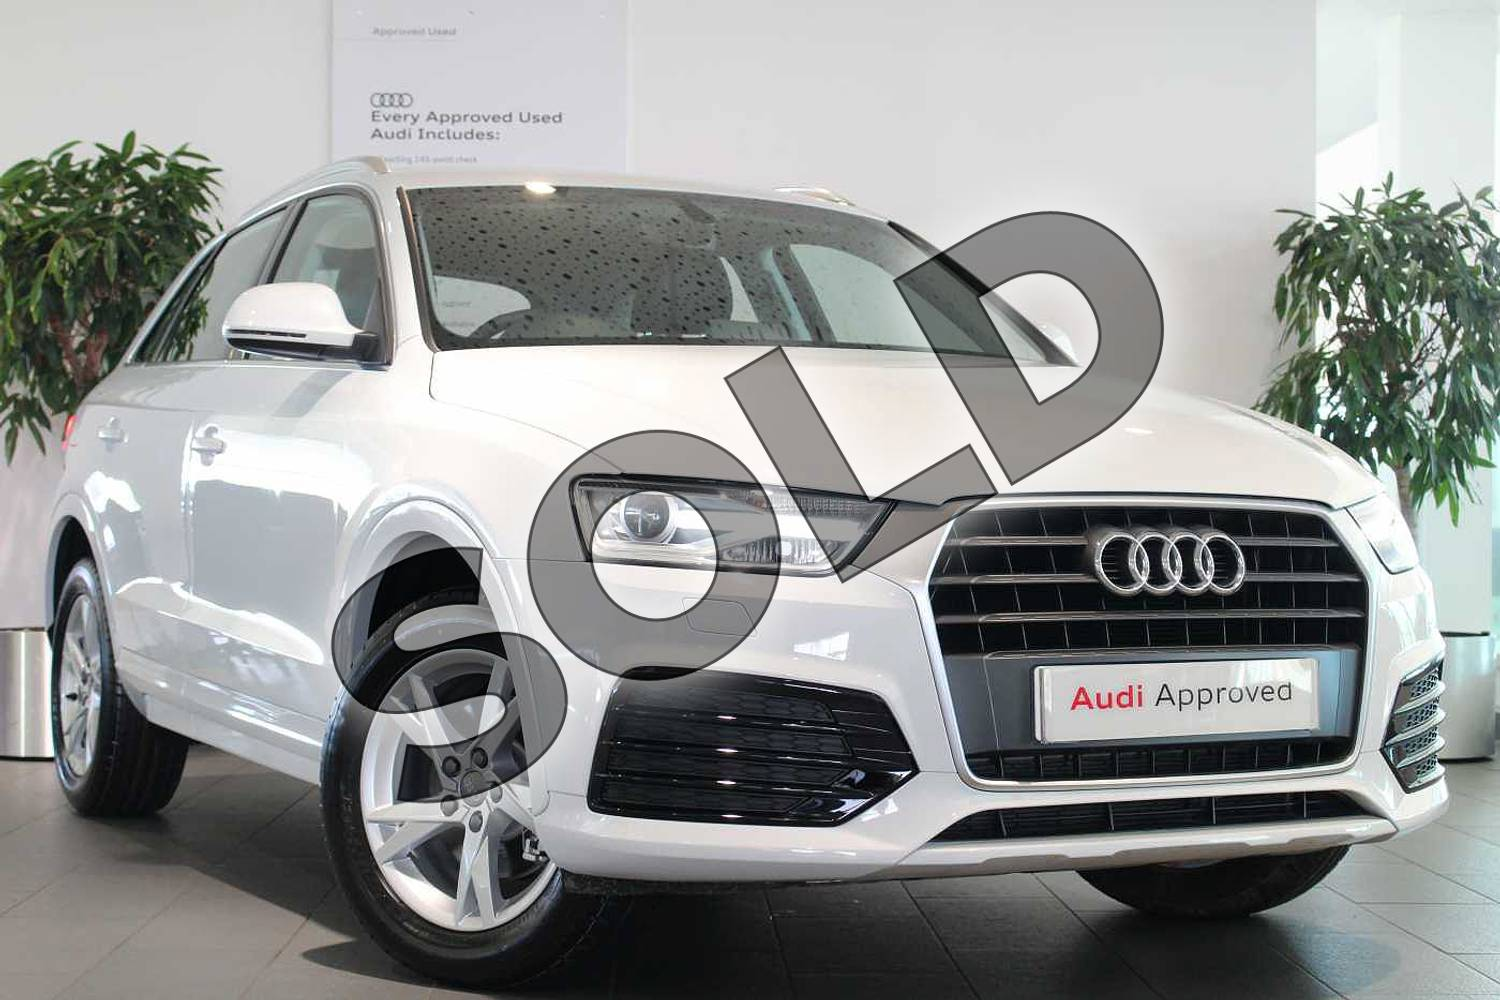 2018 Audi Q3 Estate 1.4T FSI Sport 5dr S Tronic in Glacier White Metallic at Birmingham Audi